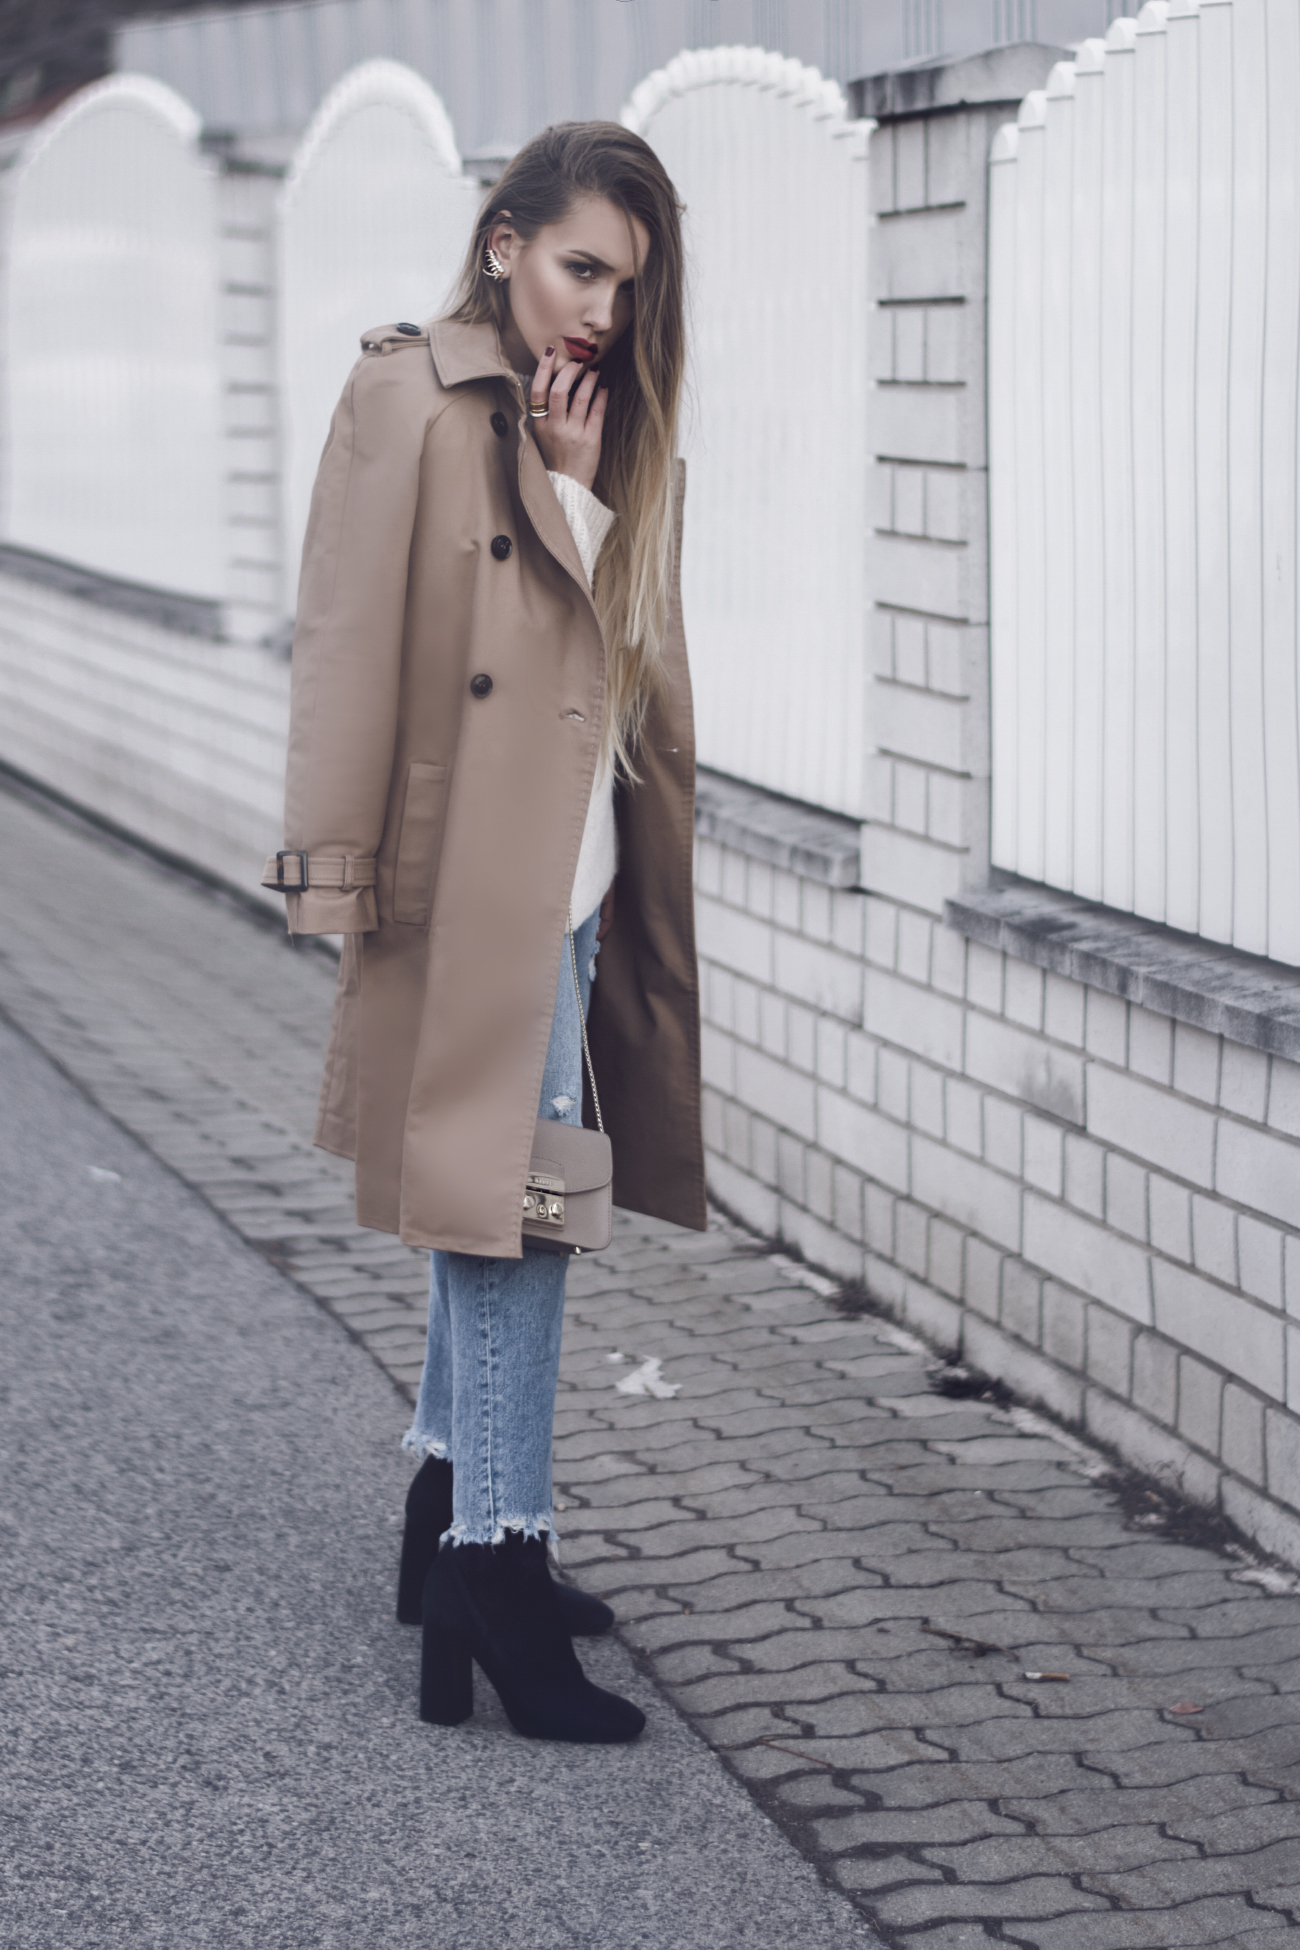 Kensington Trenchcoat von Burberry in beige look a like - Blogpost Outfit